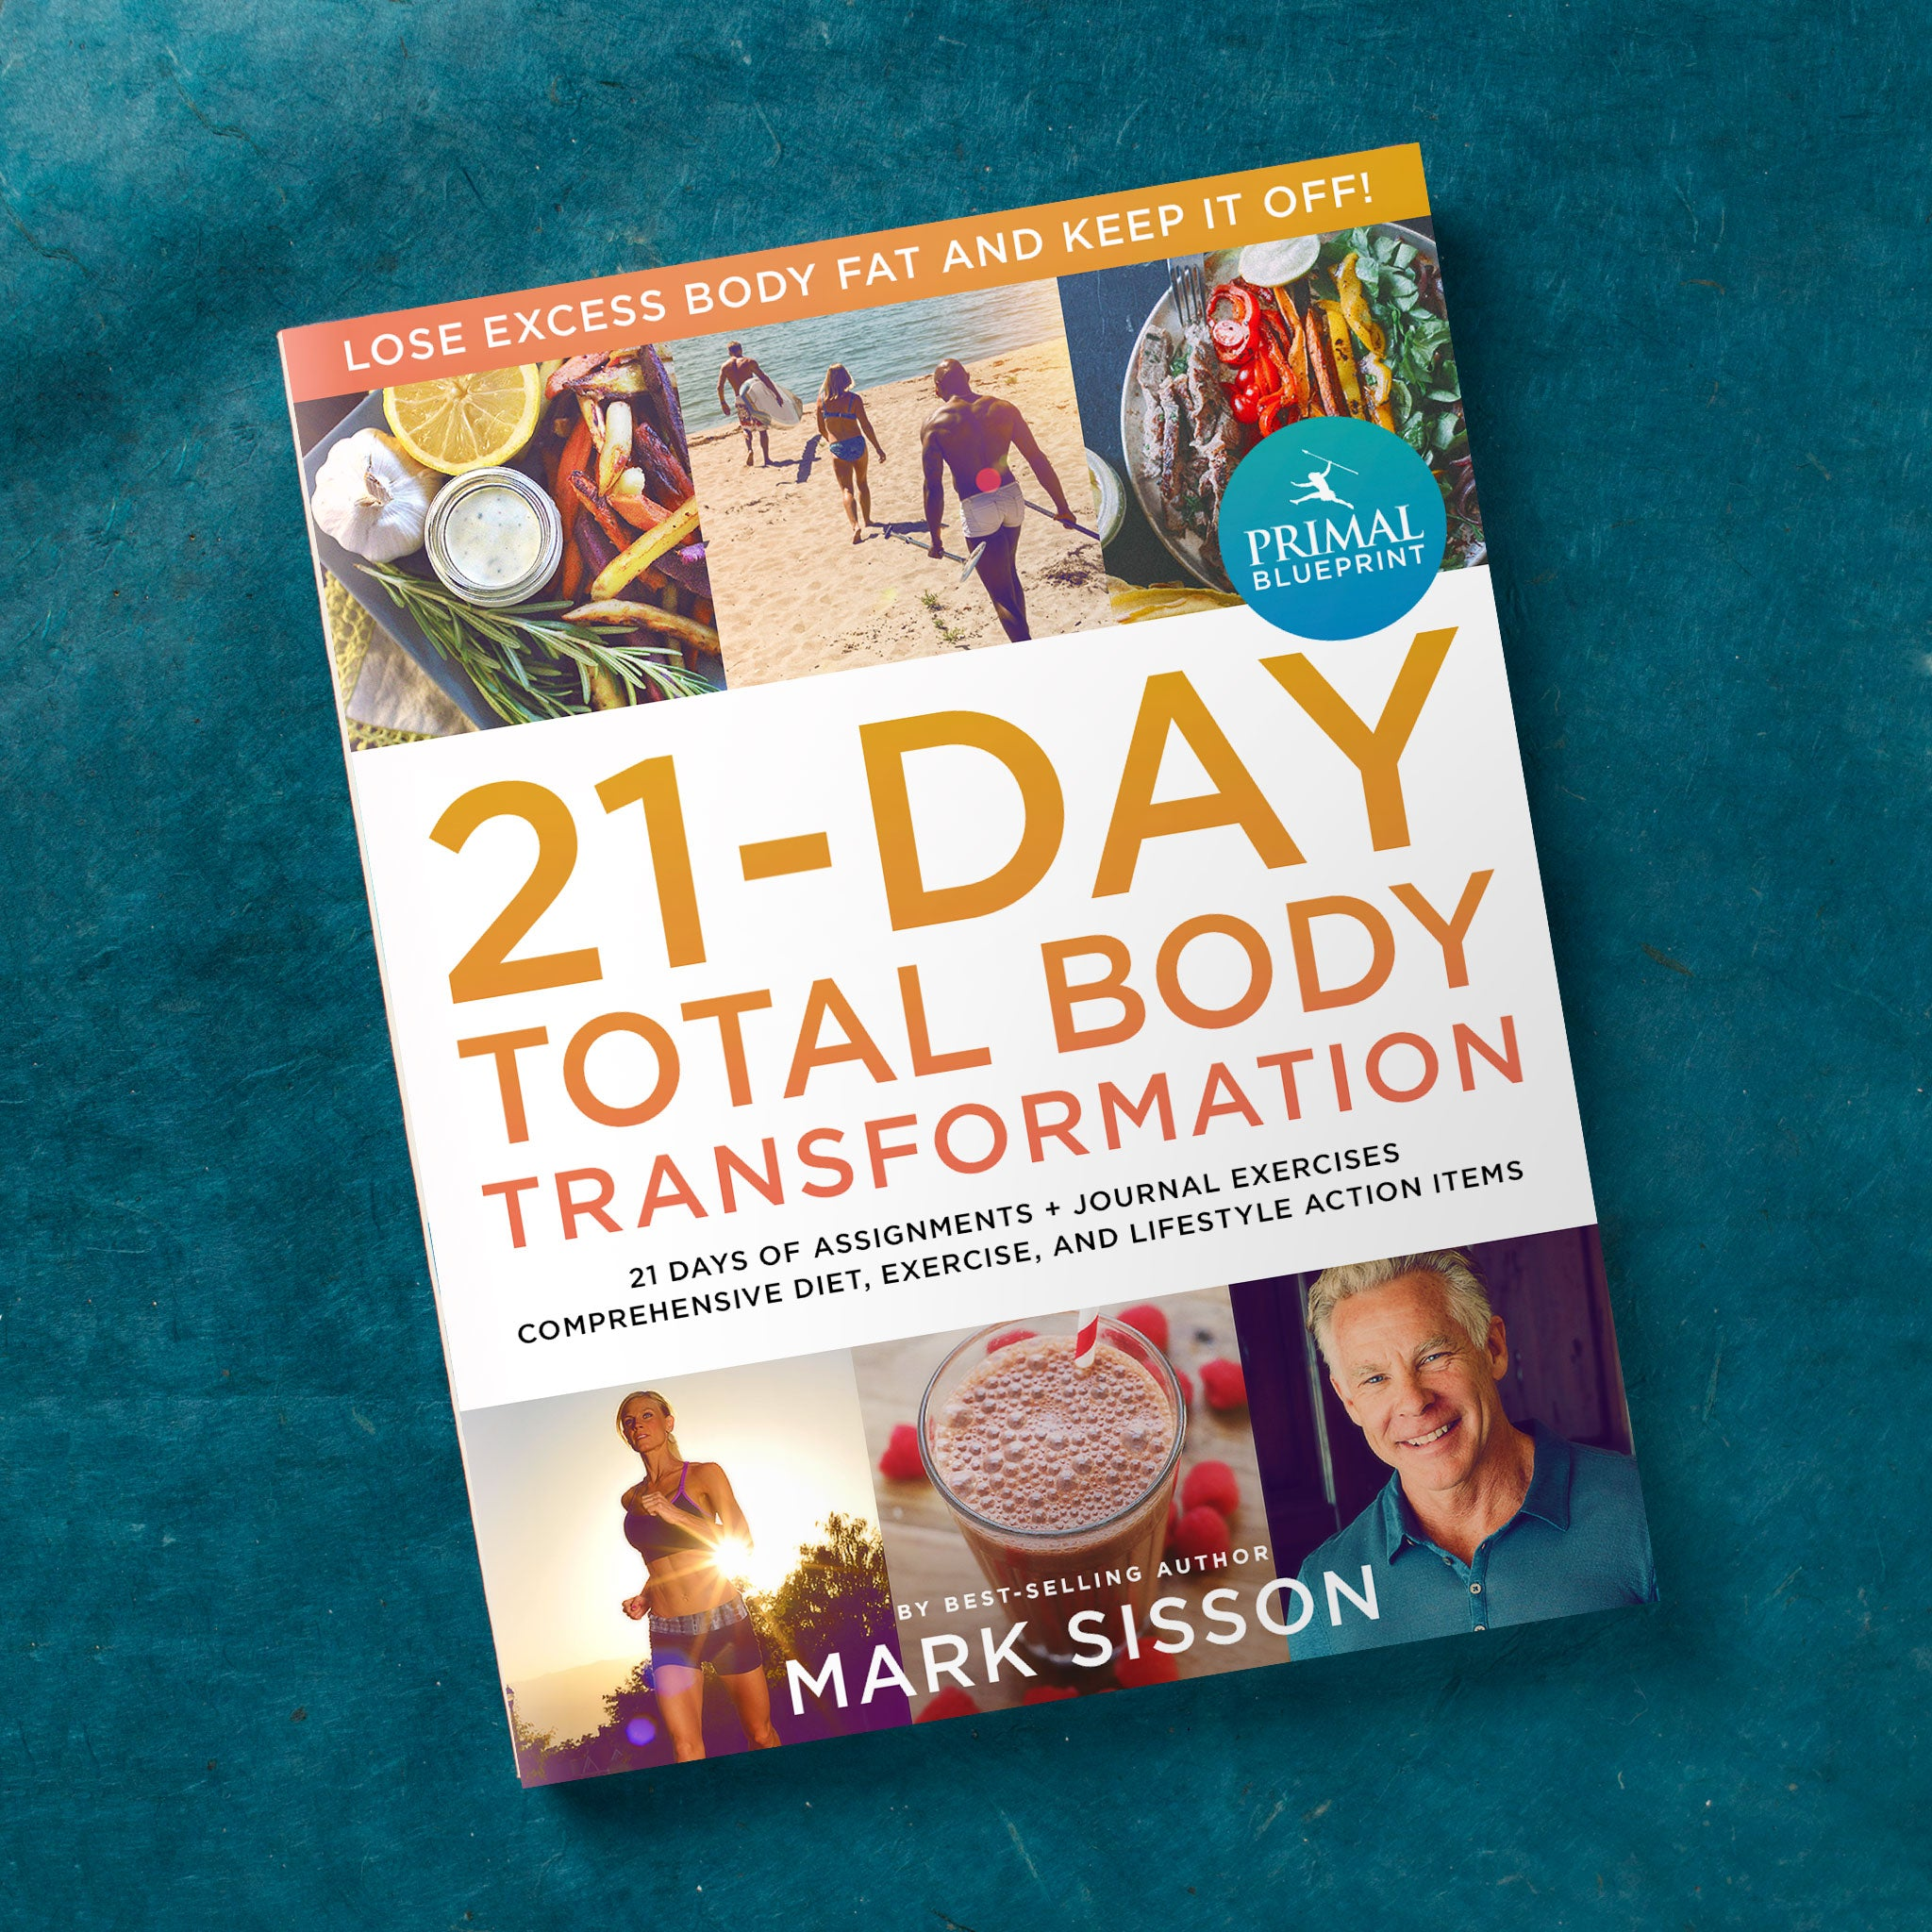 The primal blueprint 21 day total body transformation malvernweather Gallery